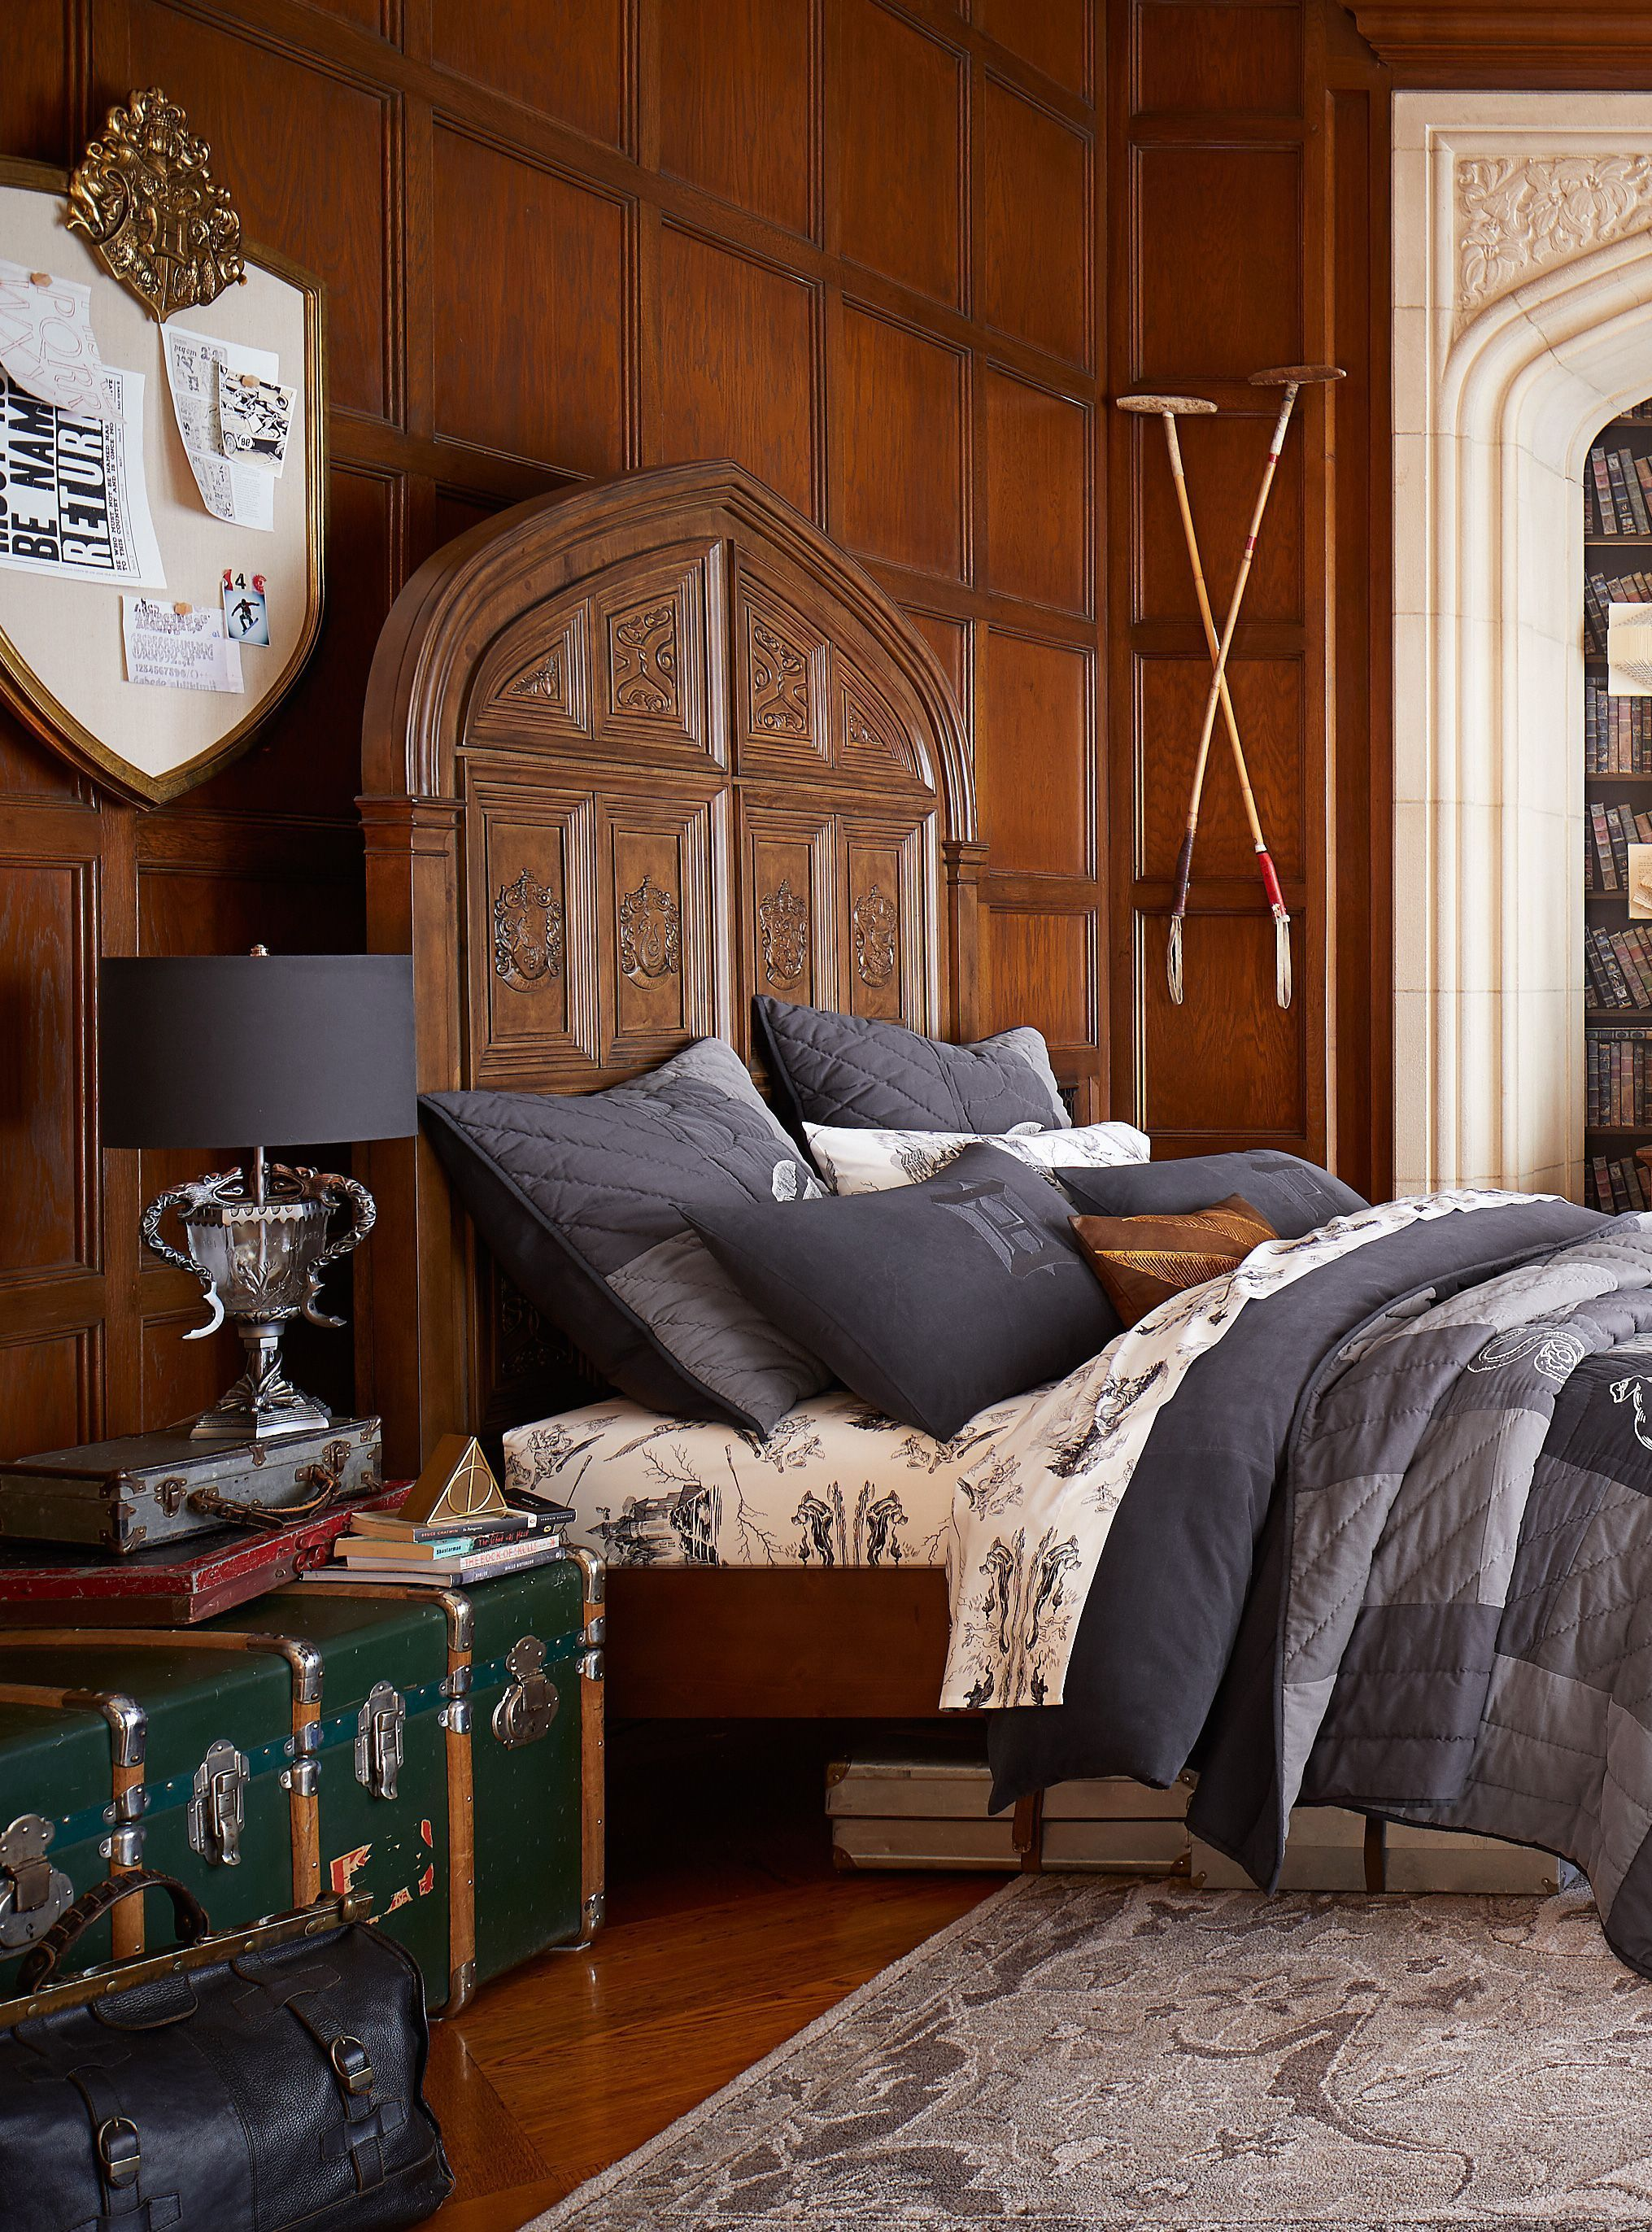 harry potter headboard on harry potter home decor just landed at pottery barn just harry barn chambre harry potter chambre deco pinterest